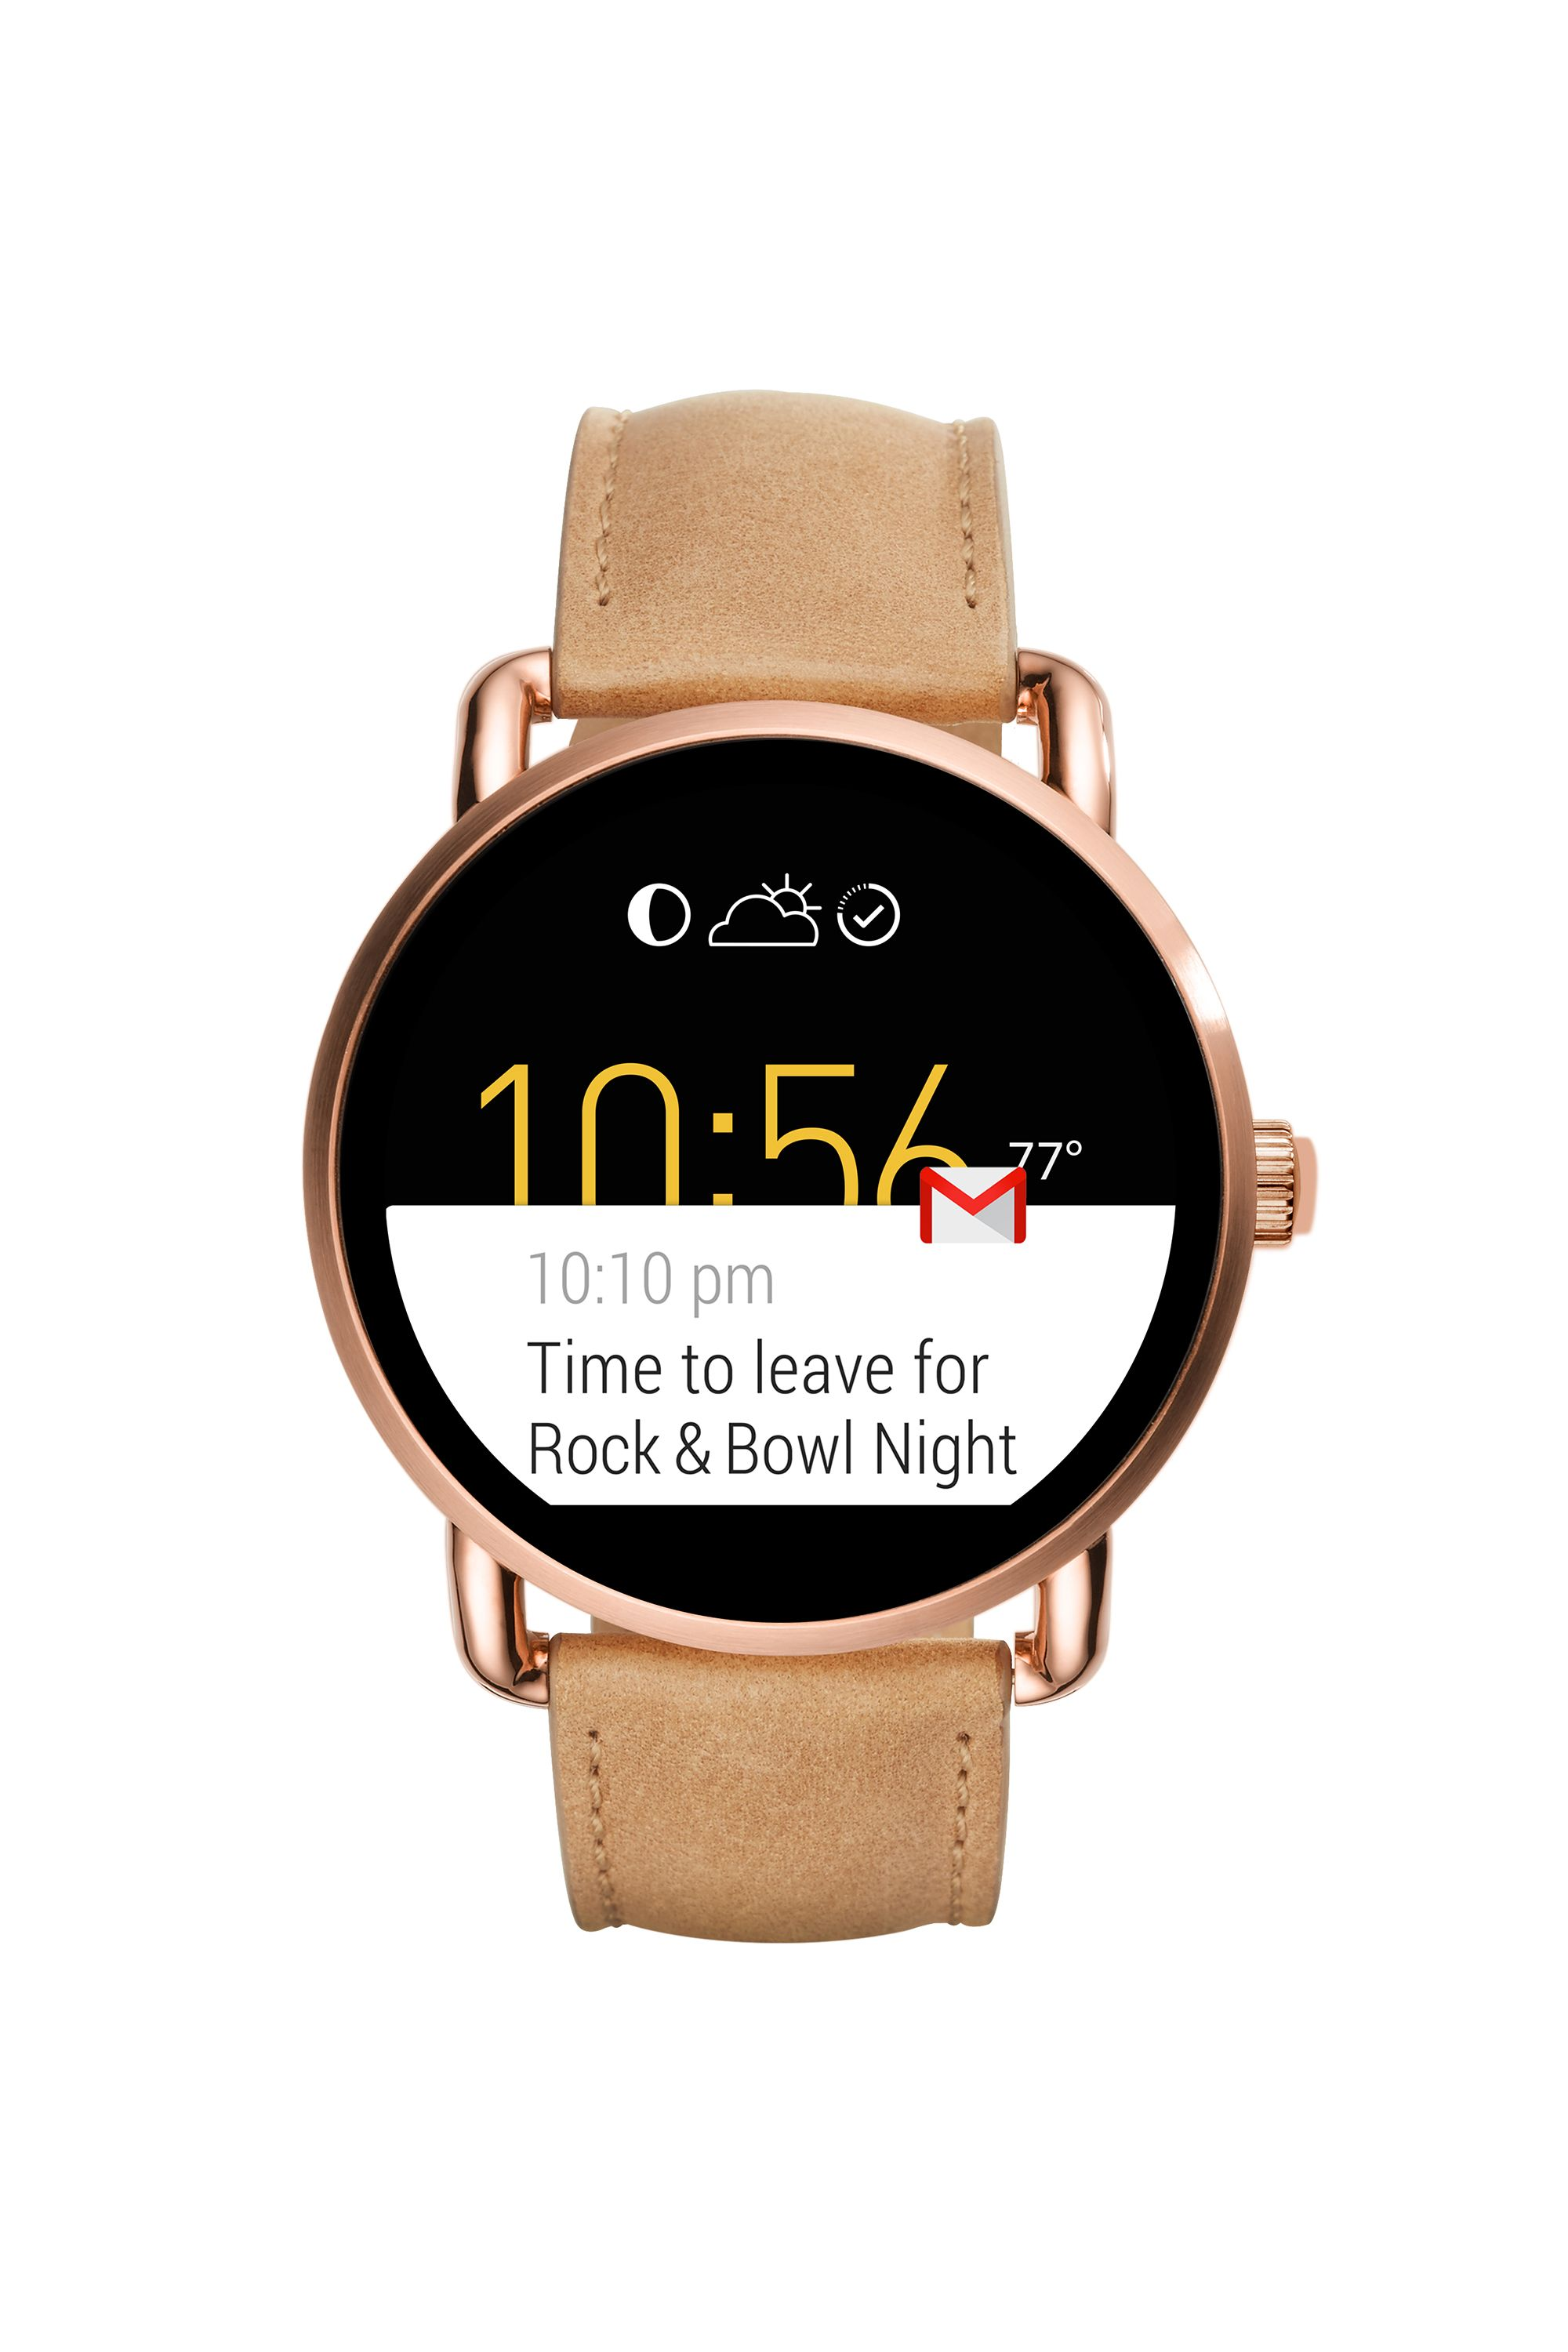 """<p>Leaving your hands bare and vulnerable to harsh weather while swiping around on your phone will feel like a very bad idea, <em data-redactor-tag=""""em"""">quickly</em>. Stay warm by relying on a smartwatch like Fossil's Q instead. While it's got the look of a classic timepiece, it's made for so much more, allowing you to read texts or see calendar notifications at a glance. </p>  <p><span data-redactor-tag=""""span"""" data-verified=""""redactor""""></span><em data-redactor-tag=""""em"""">Fossil Q Wander Touchscreen Light Brown Leather Smartwatch, $295; <a href=""""https://www.fossil.com/us/en/products/q-wander-touchscreen-light-brown-leather-smartwatch-sku-ftw2102p.html"""">fossil.com</a></em> </p>  <p><em data-redactor-tag=""""em""""></em> </p>  <p><em data-redactor-tag=""""em""""></em> </p>  <p><em data-redactor-tag=""""em""""></em><em data-redactor-tag=""""em""""></em></p>"""